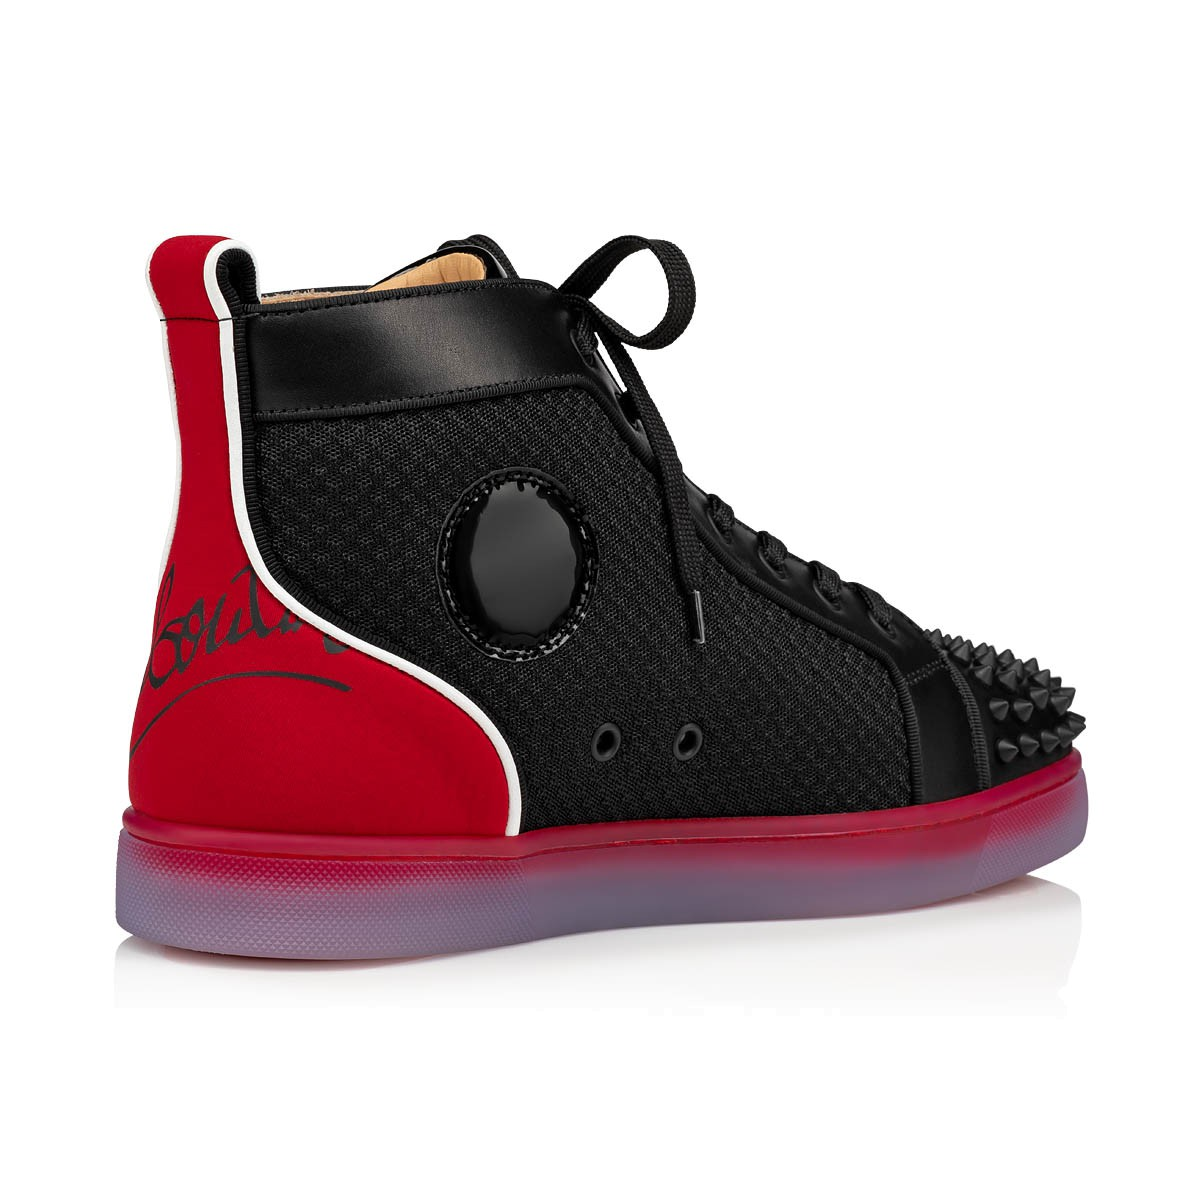 Shoes - Fun Lou Spikes - Christian Louboutin